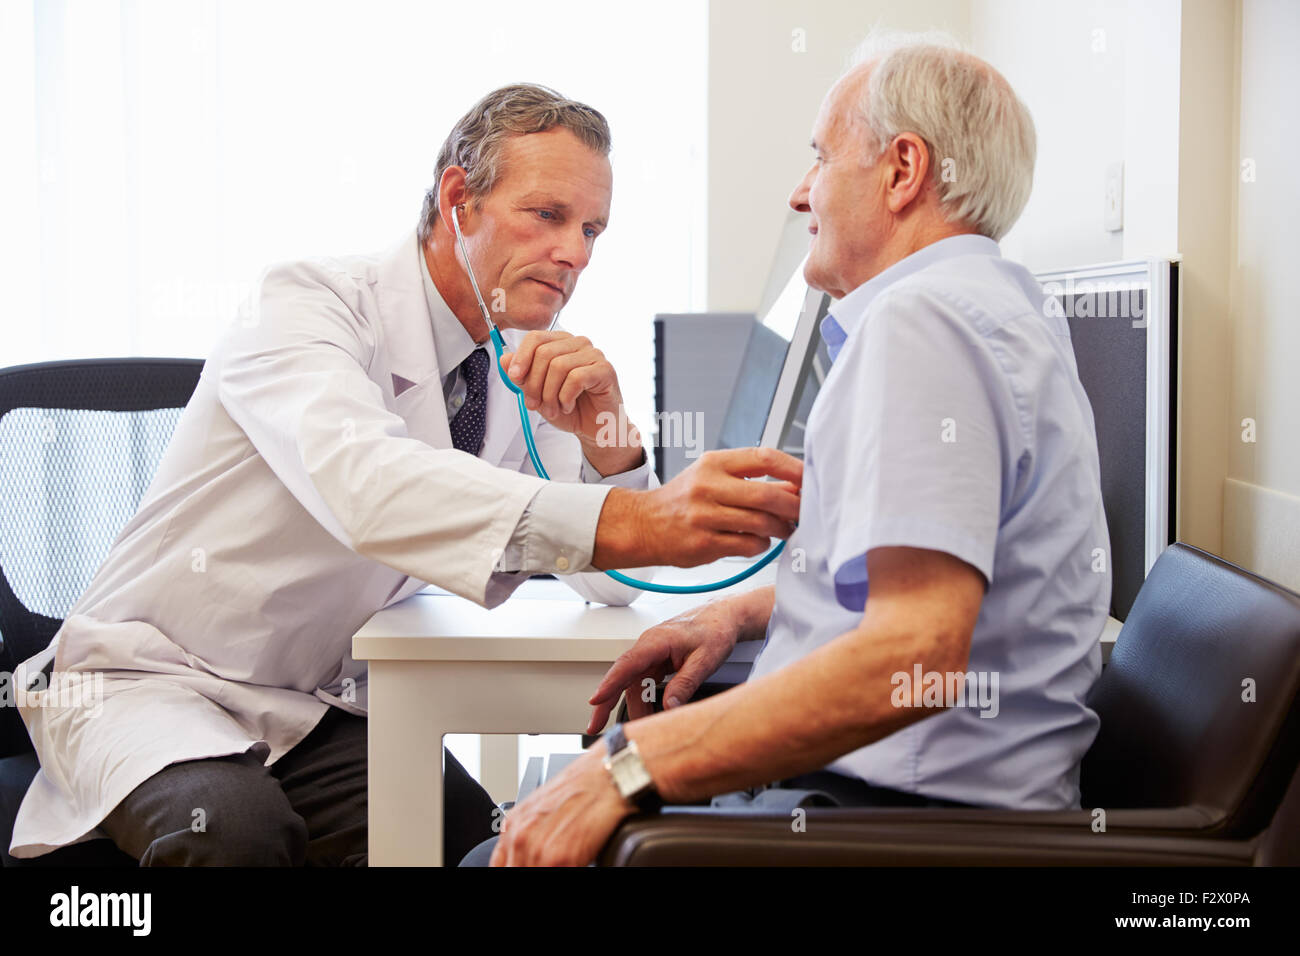 Senior Patient Having Medical Exam With Doctor In Office - Stock Image